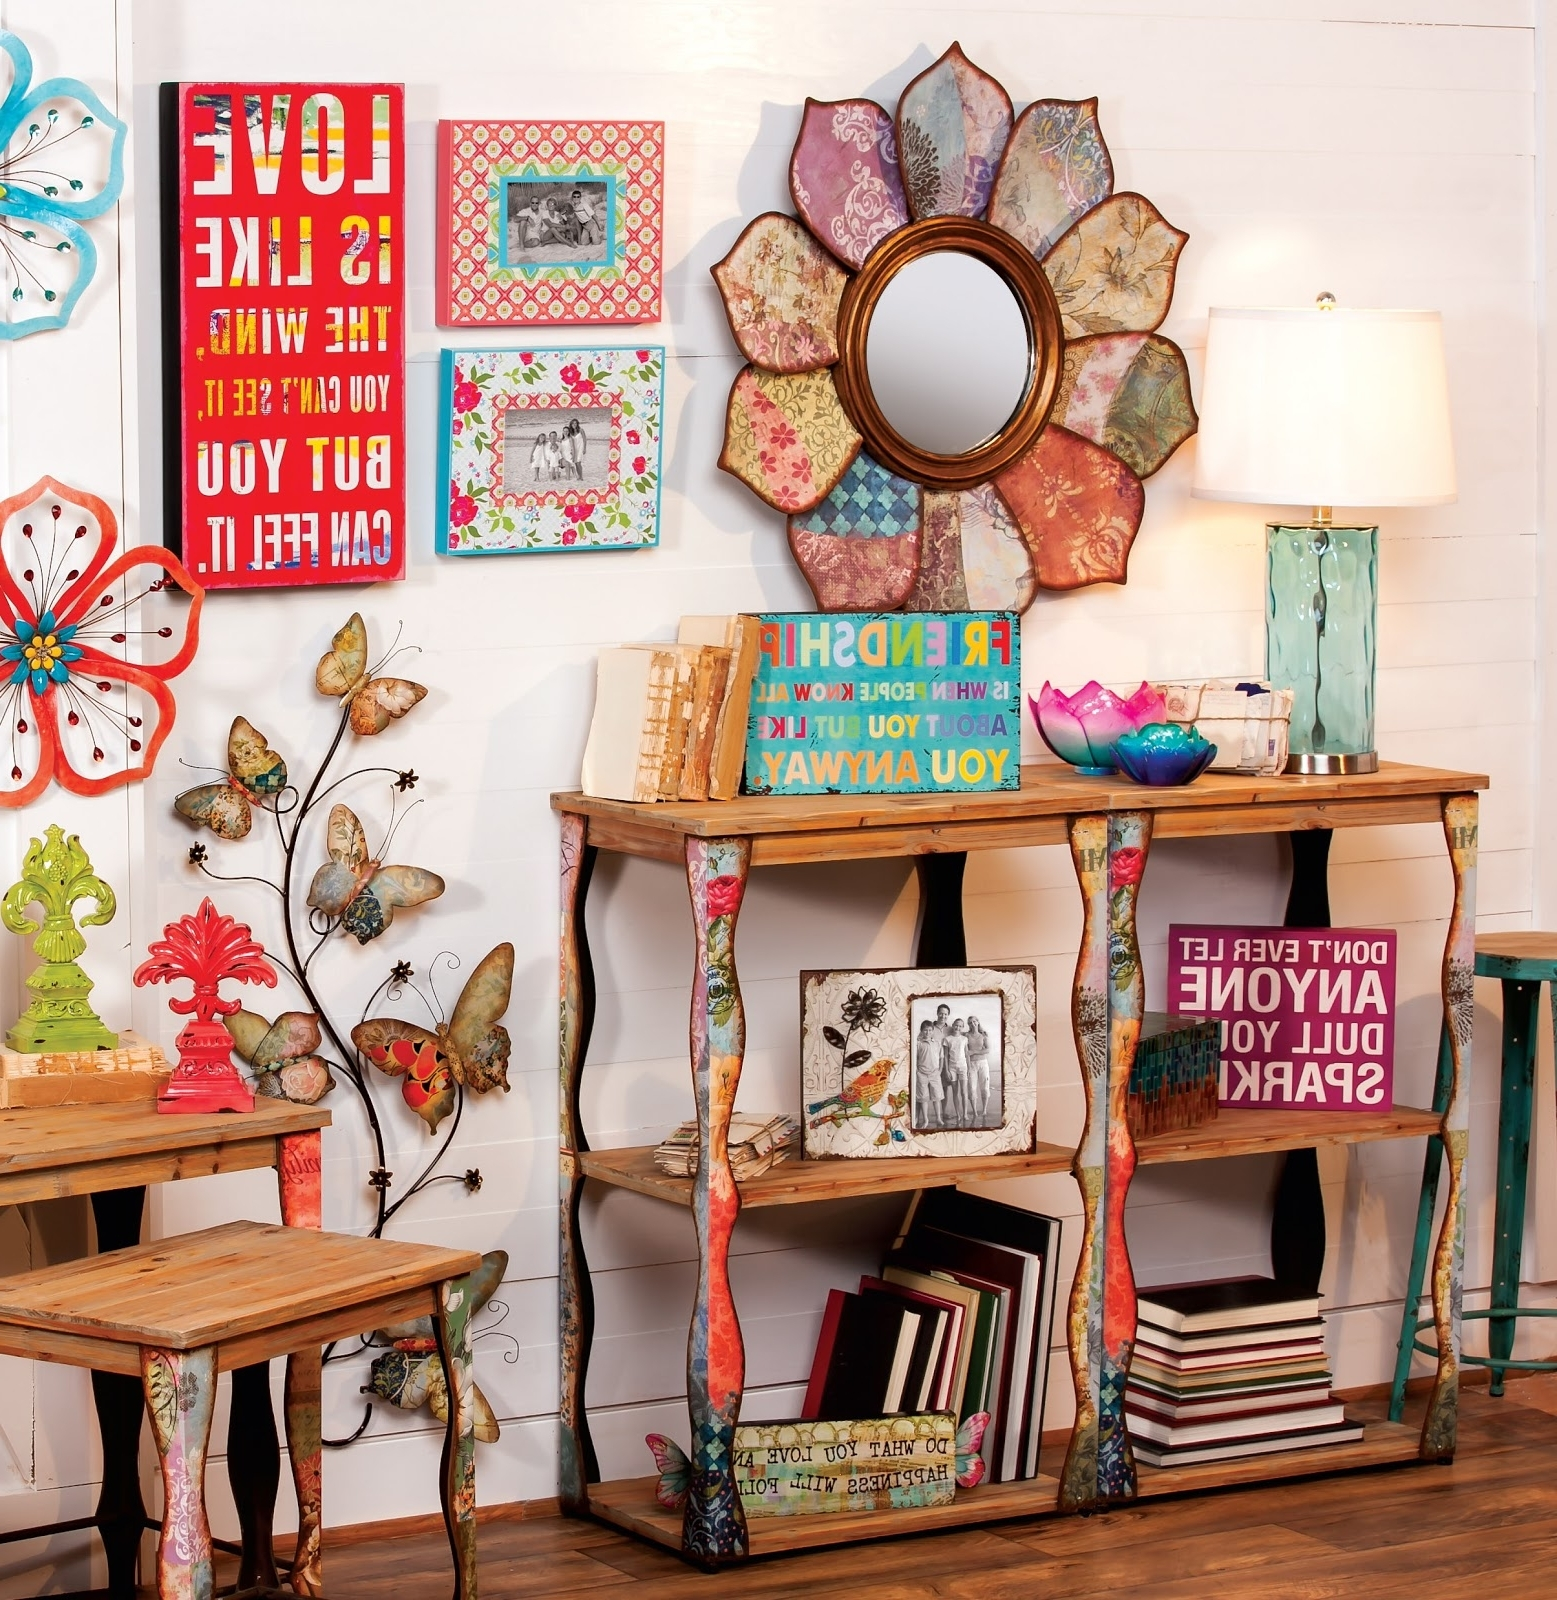 Well Known Boho Chic Wall Art Intended For Boho Wall Decor – Frantasia Home Ideas : Choosing Boho Décor To (View 13 of 15)